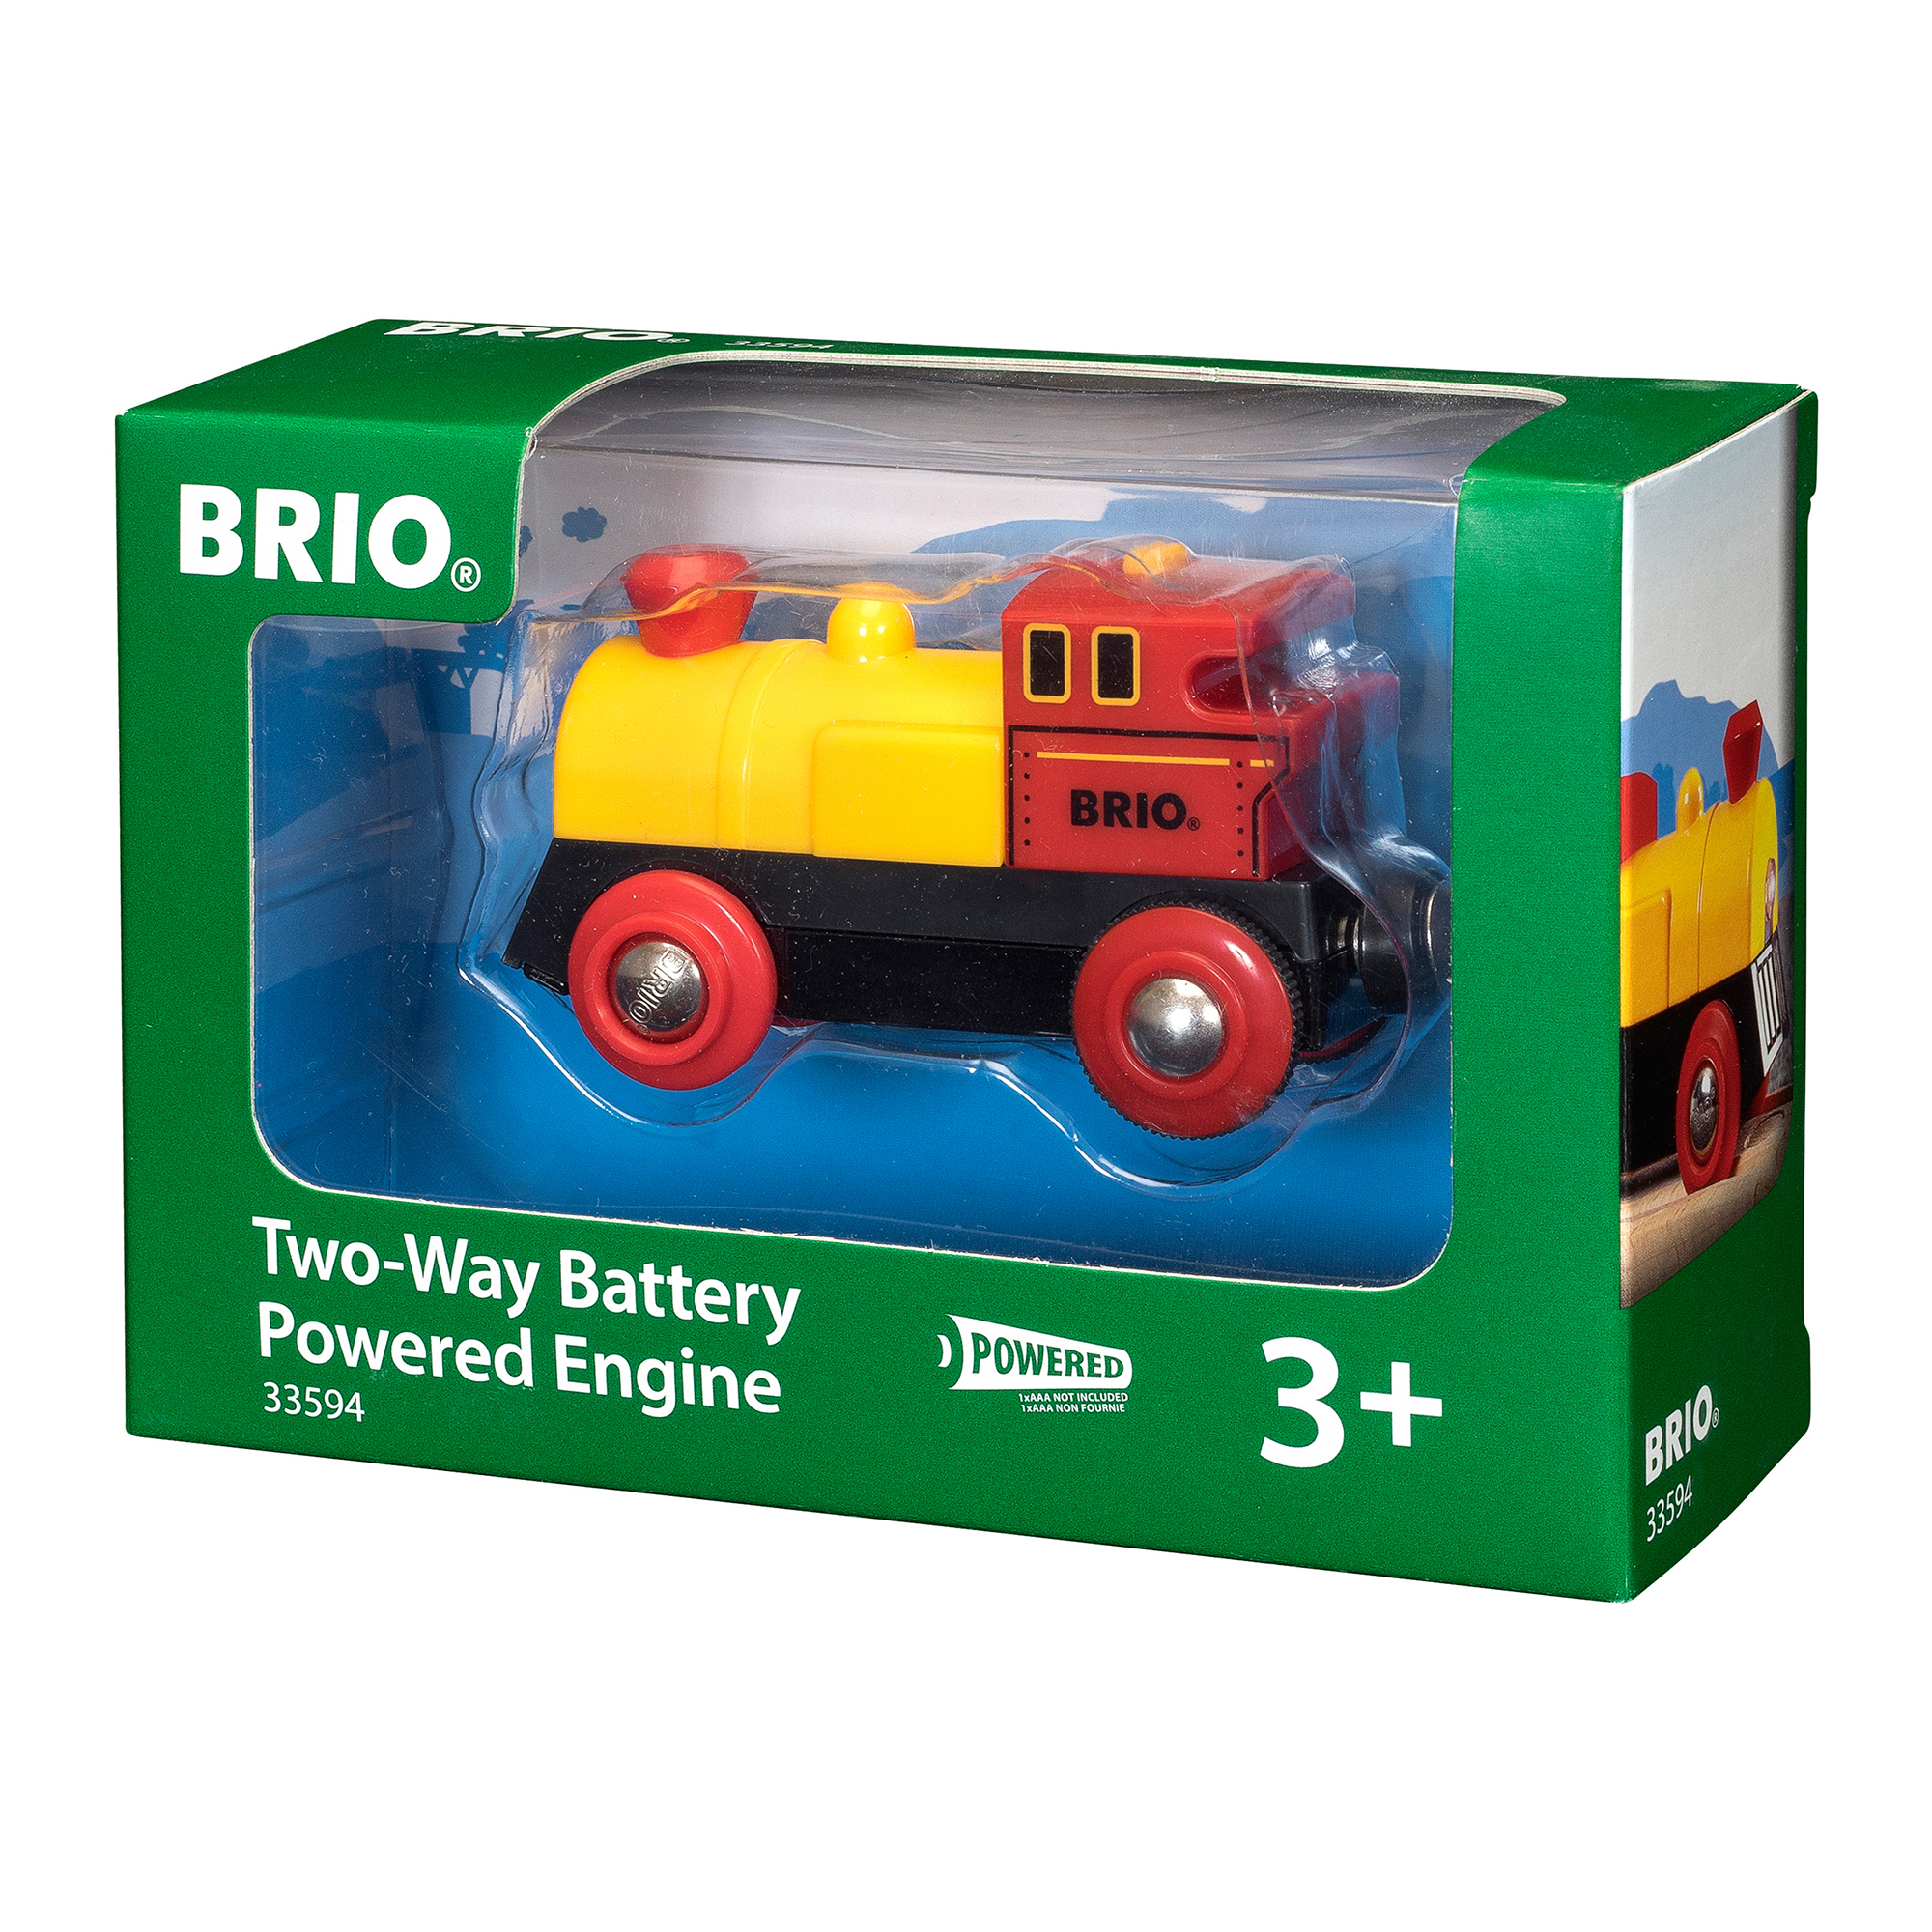 BRIO World Two Way Battery Powered Engine